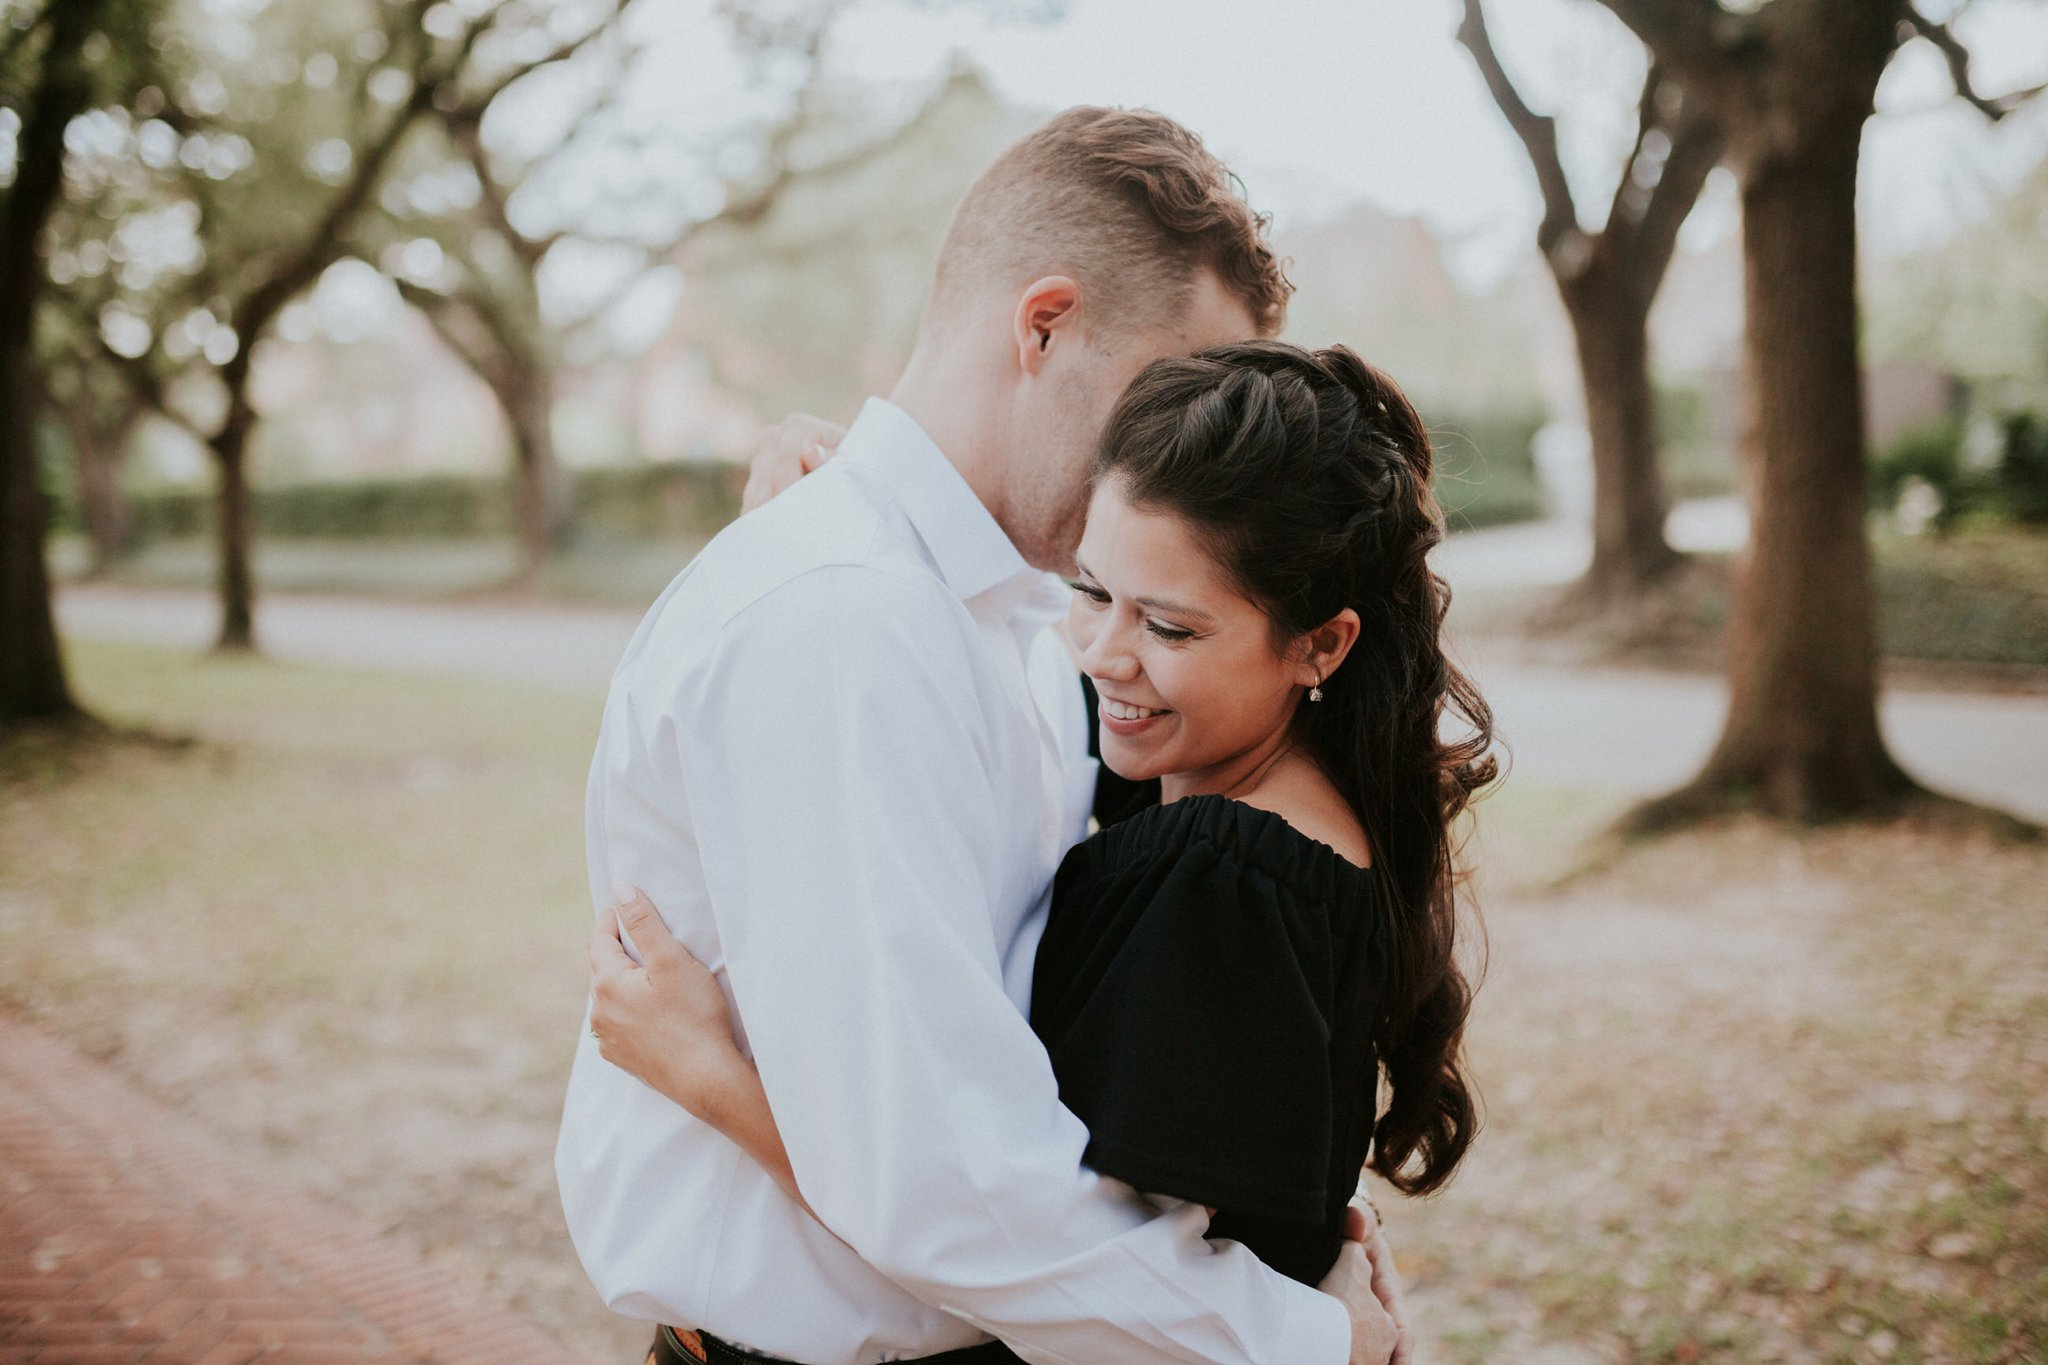 Ashley_and_Kyle___South_BLVD_Houston_Engagement_Session_1116.jpg